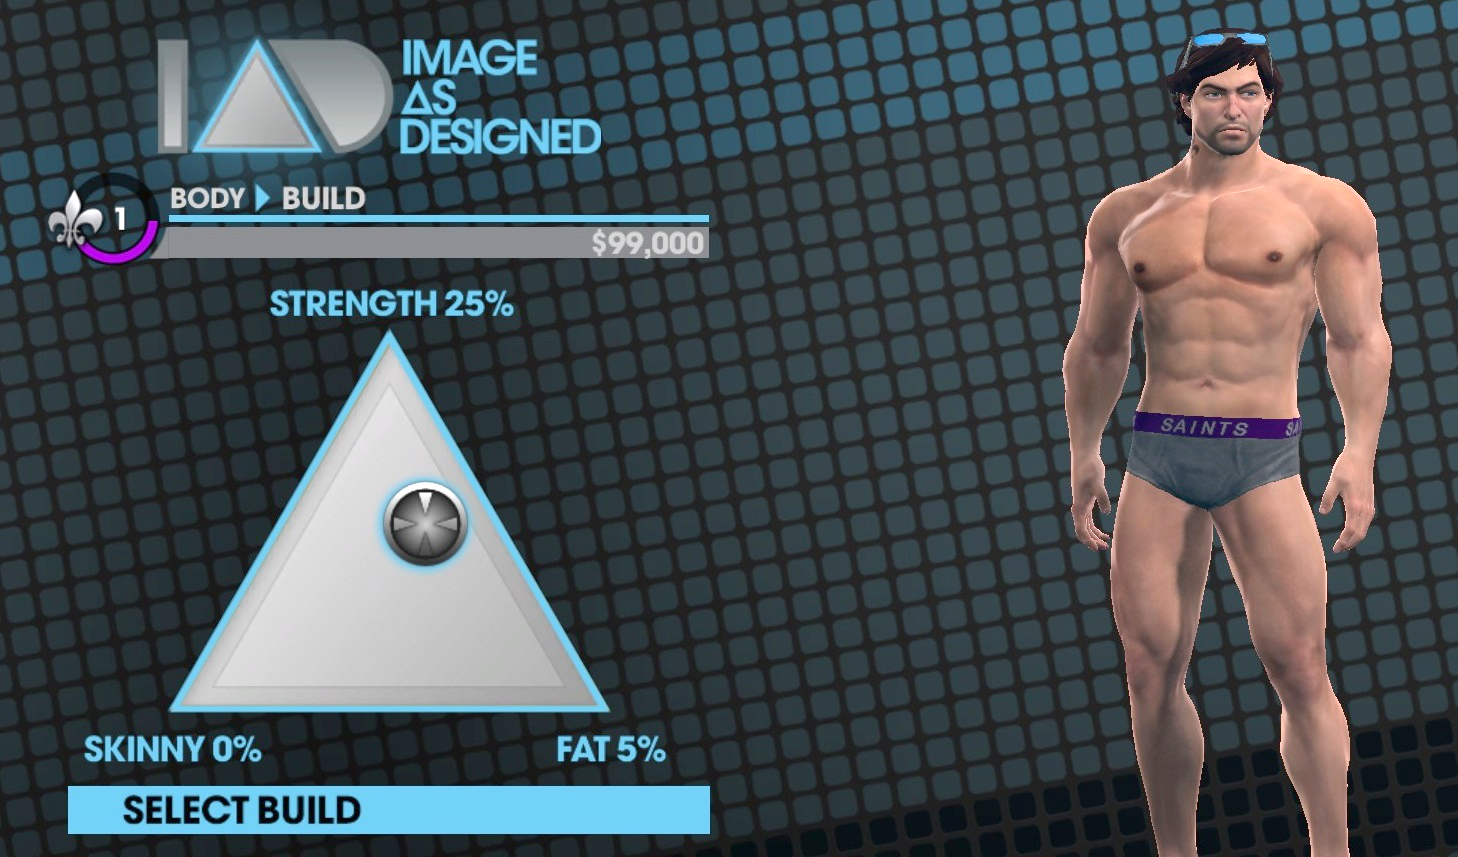 The body build triangle from  Saints Row: The Third.  The same system is used in  Saints Row 4.  Personal screenshot from  Saints Row: The Third,  by Volition, November 15, 2011.